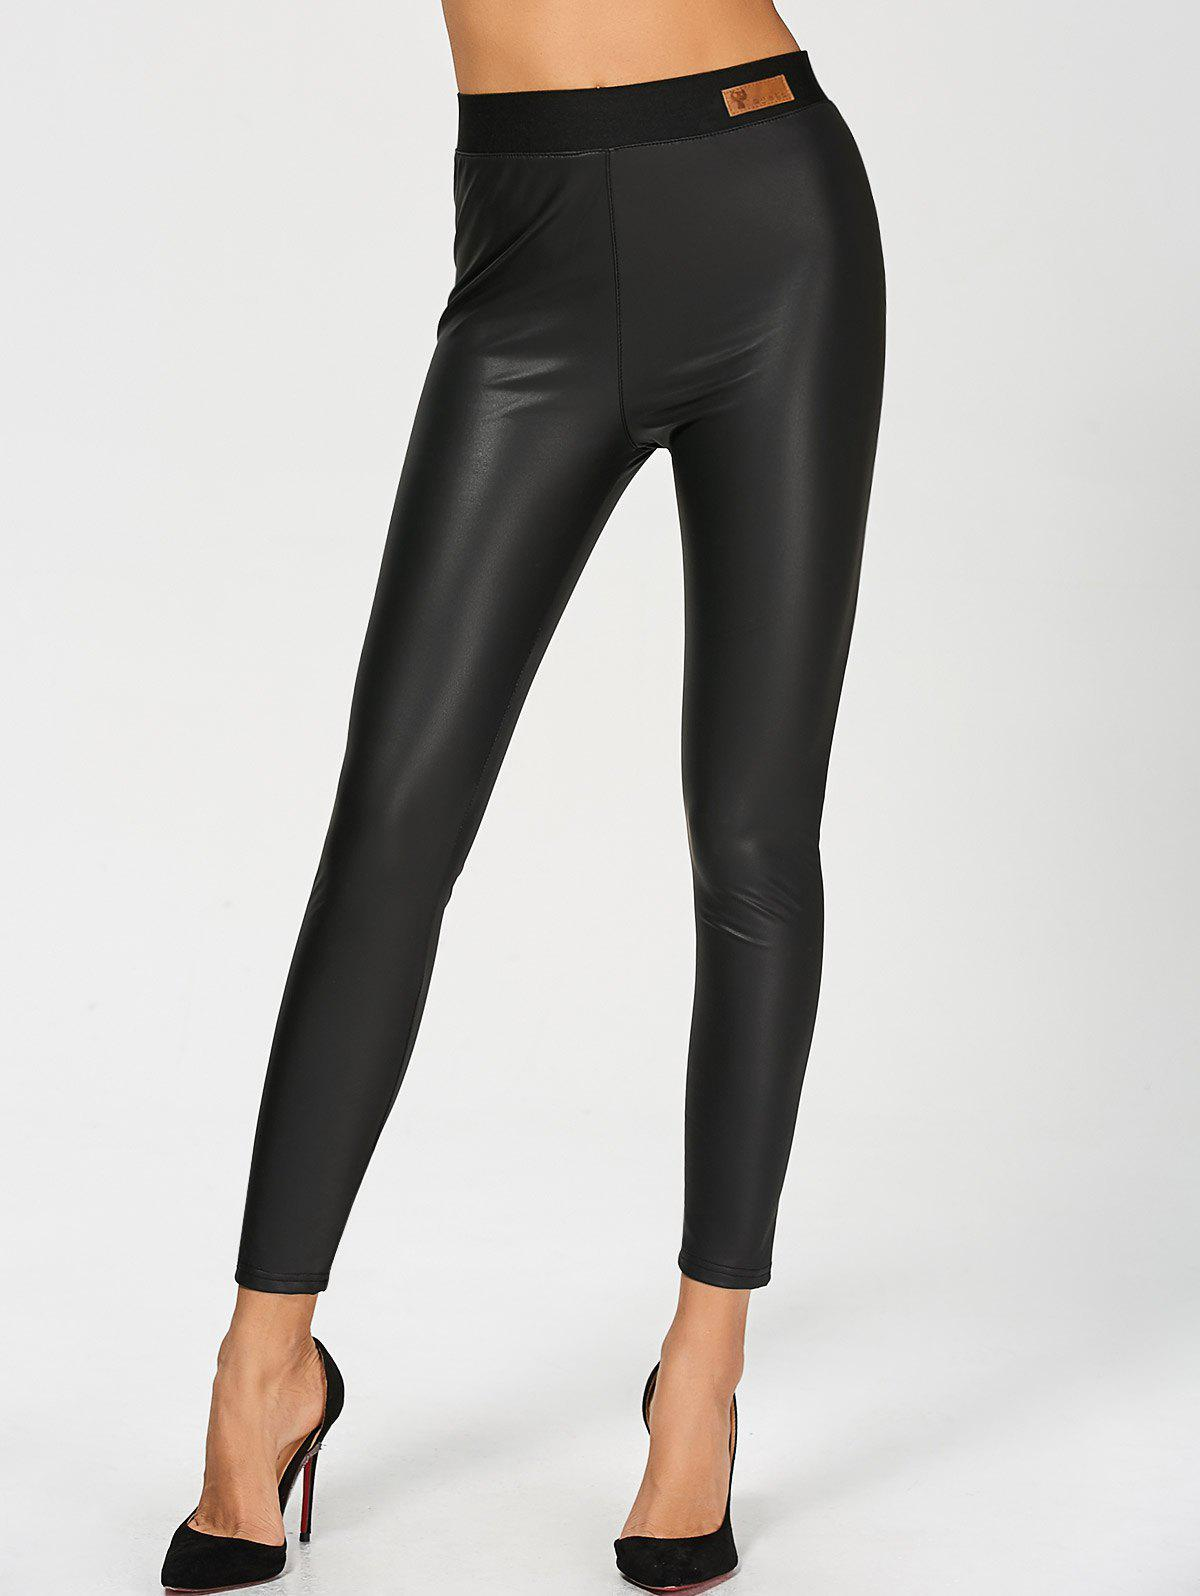 PU Leather High Waisted Ankle Skinny Pants - BLACK L